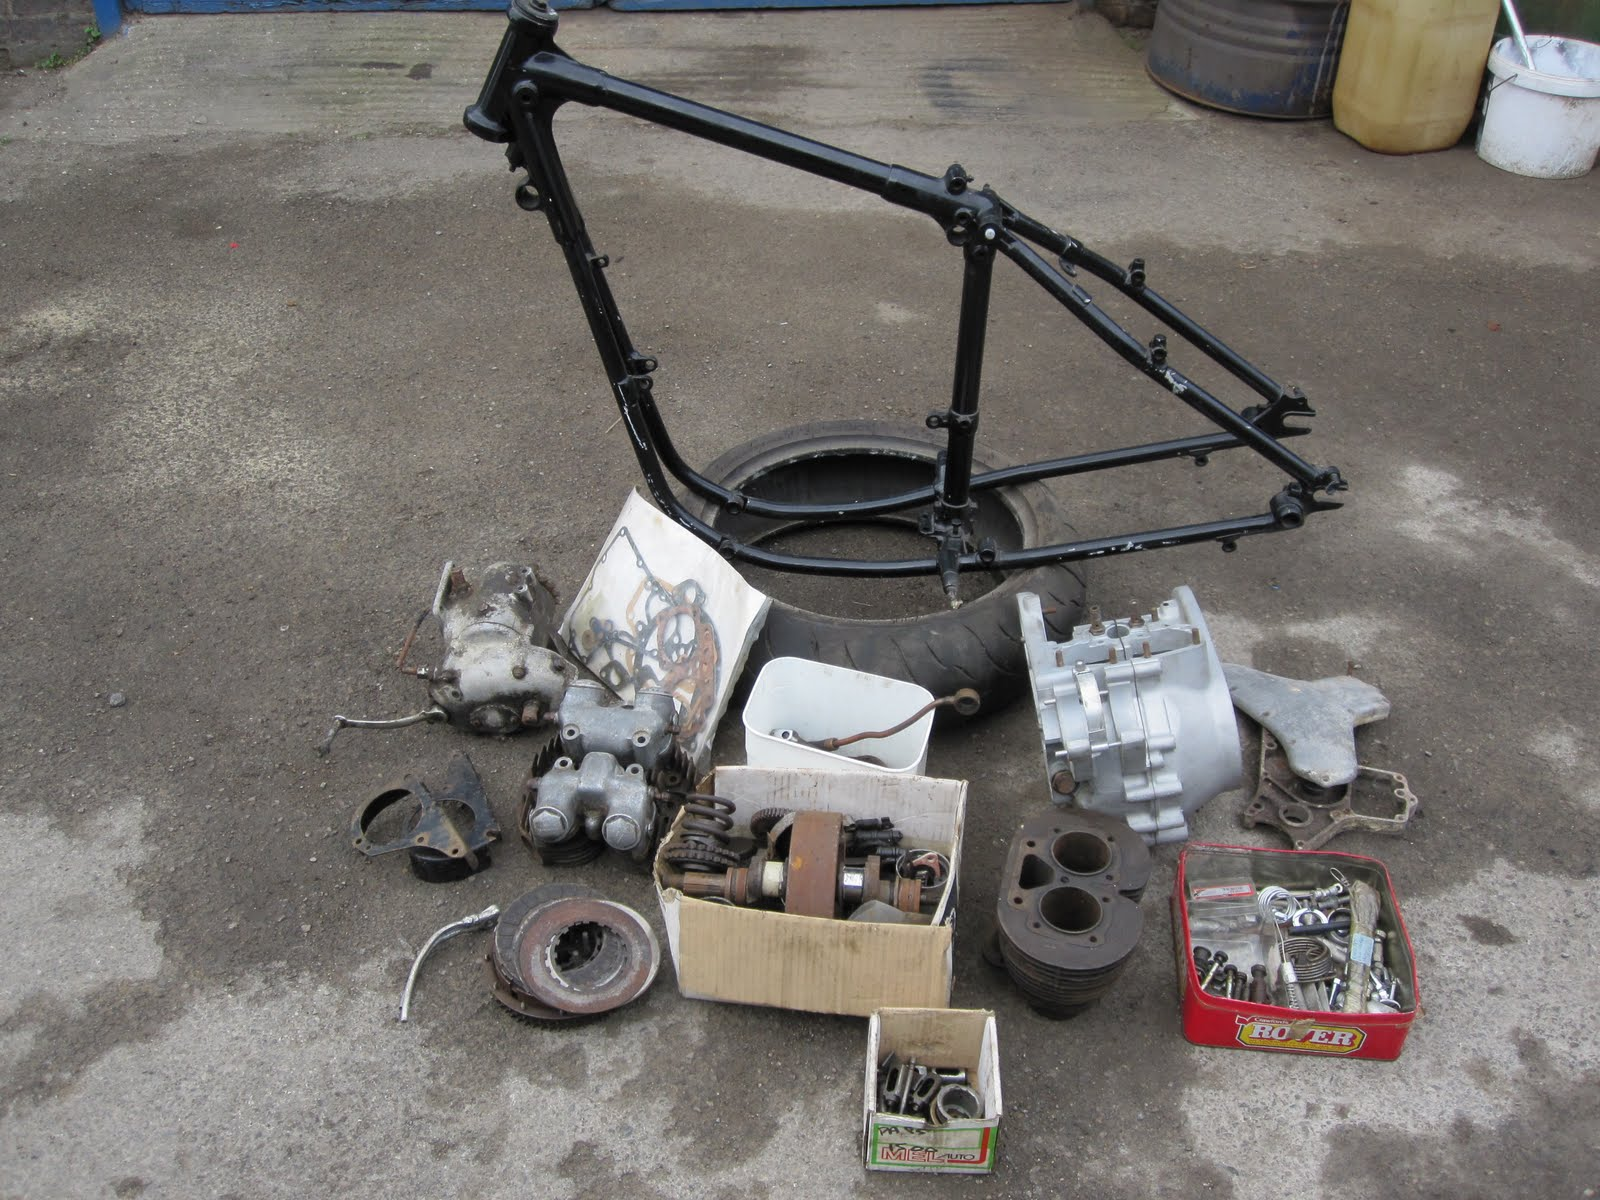 ATE the RICH UK: RIGID A7 BOBBER PROJECT FOR SALE